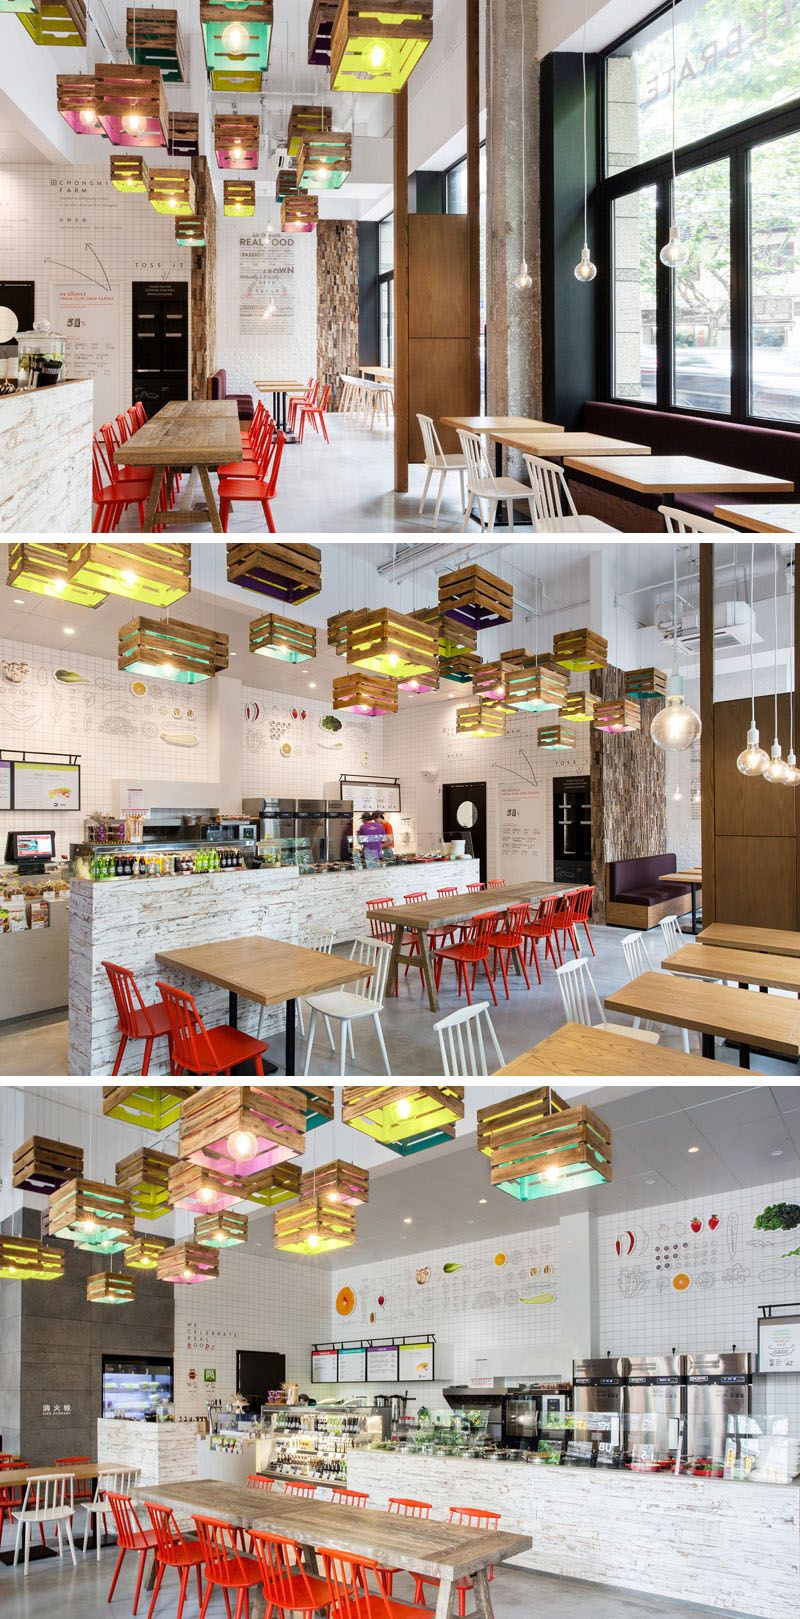 lighting design idea painted wooden crates have been used to create pendant lighting in this restaurant - Painted Wood Cafe Decoration